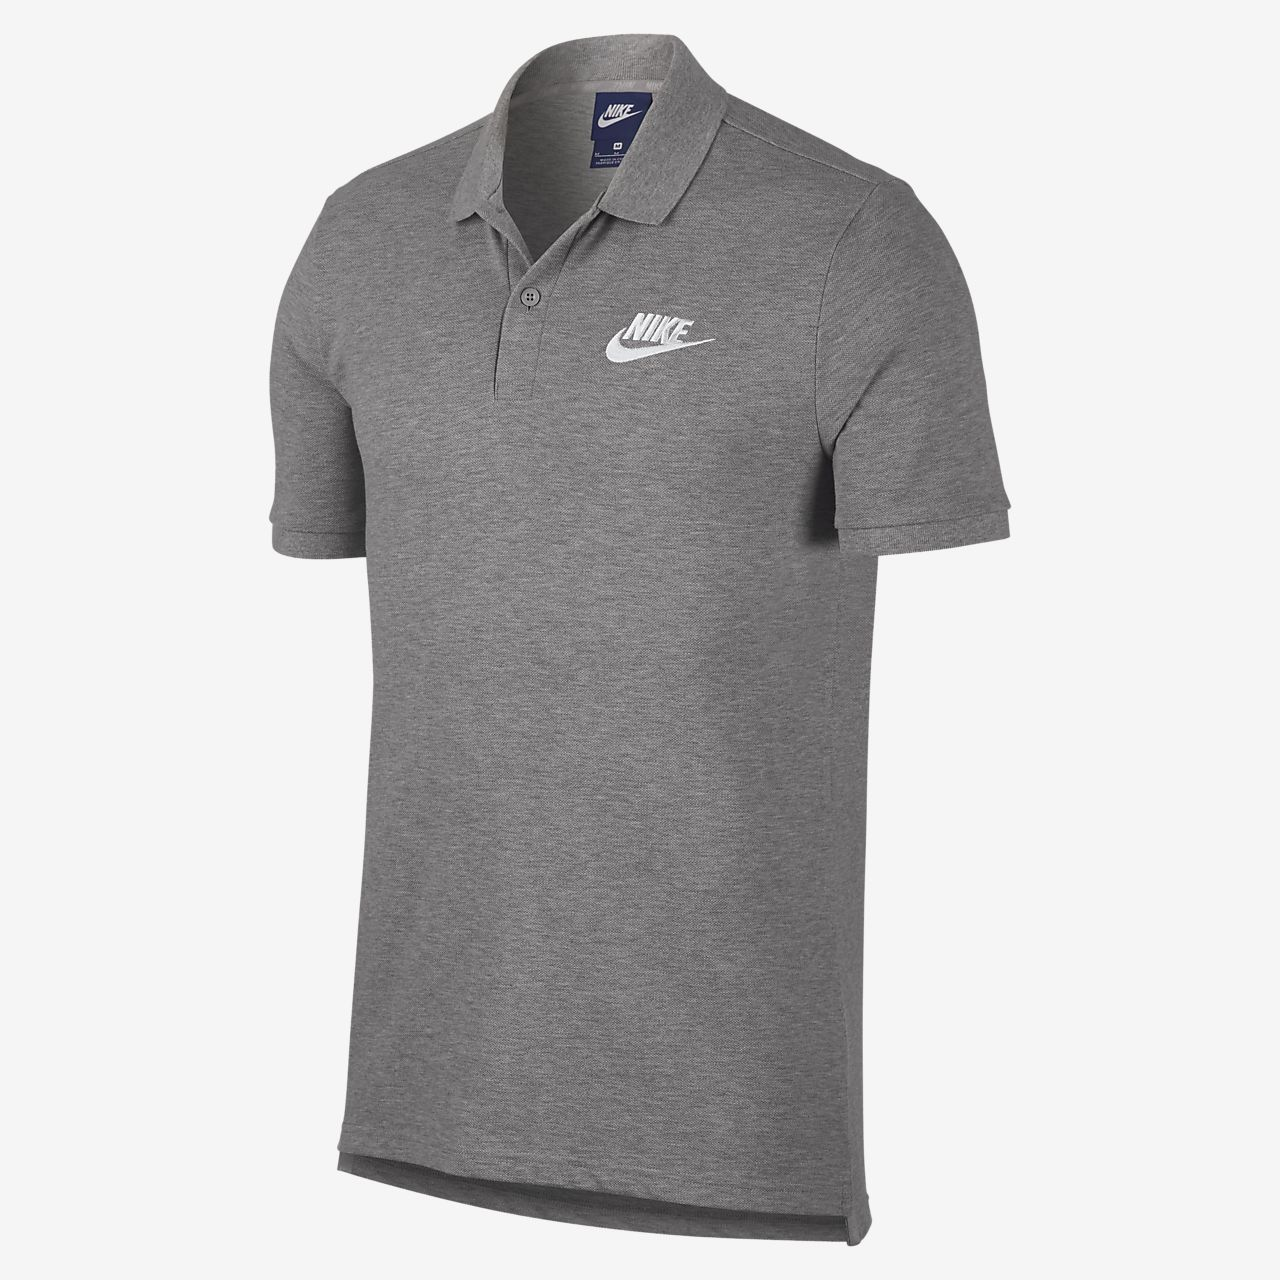 Nike Hurley Dri-FIT Lagos Polo Mens Dark Grey/White/Black